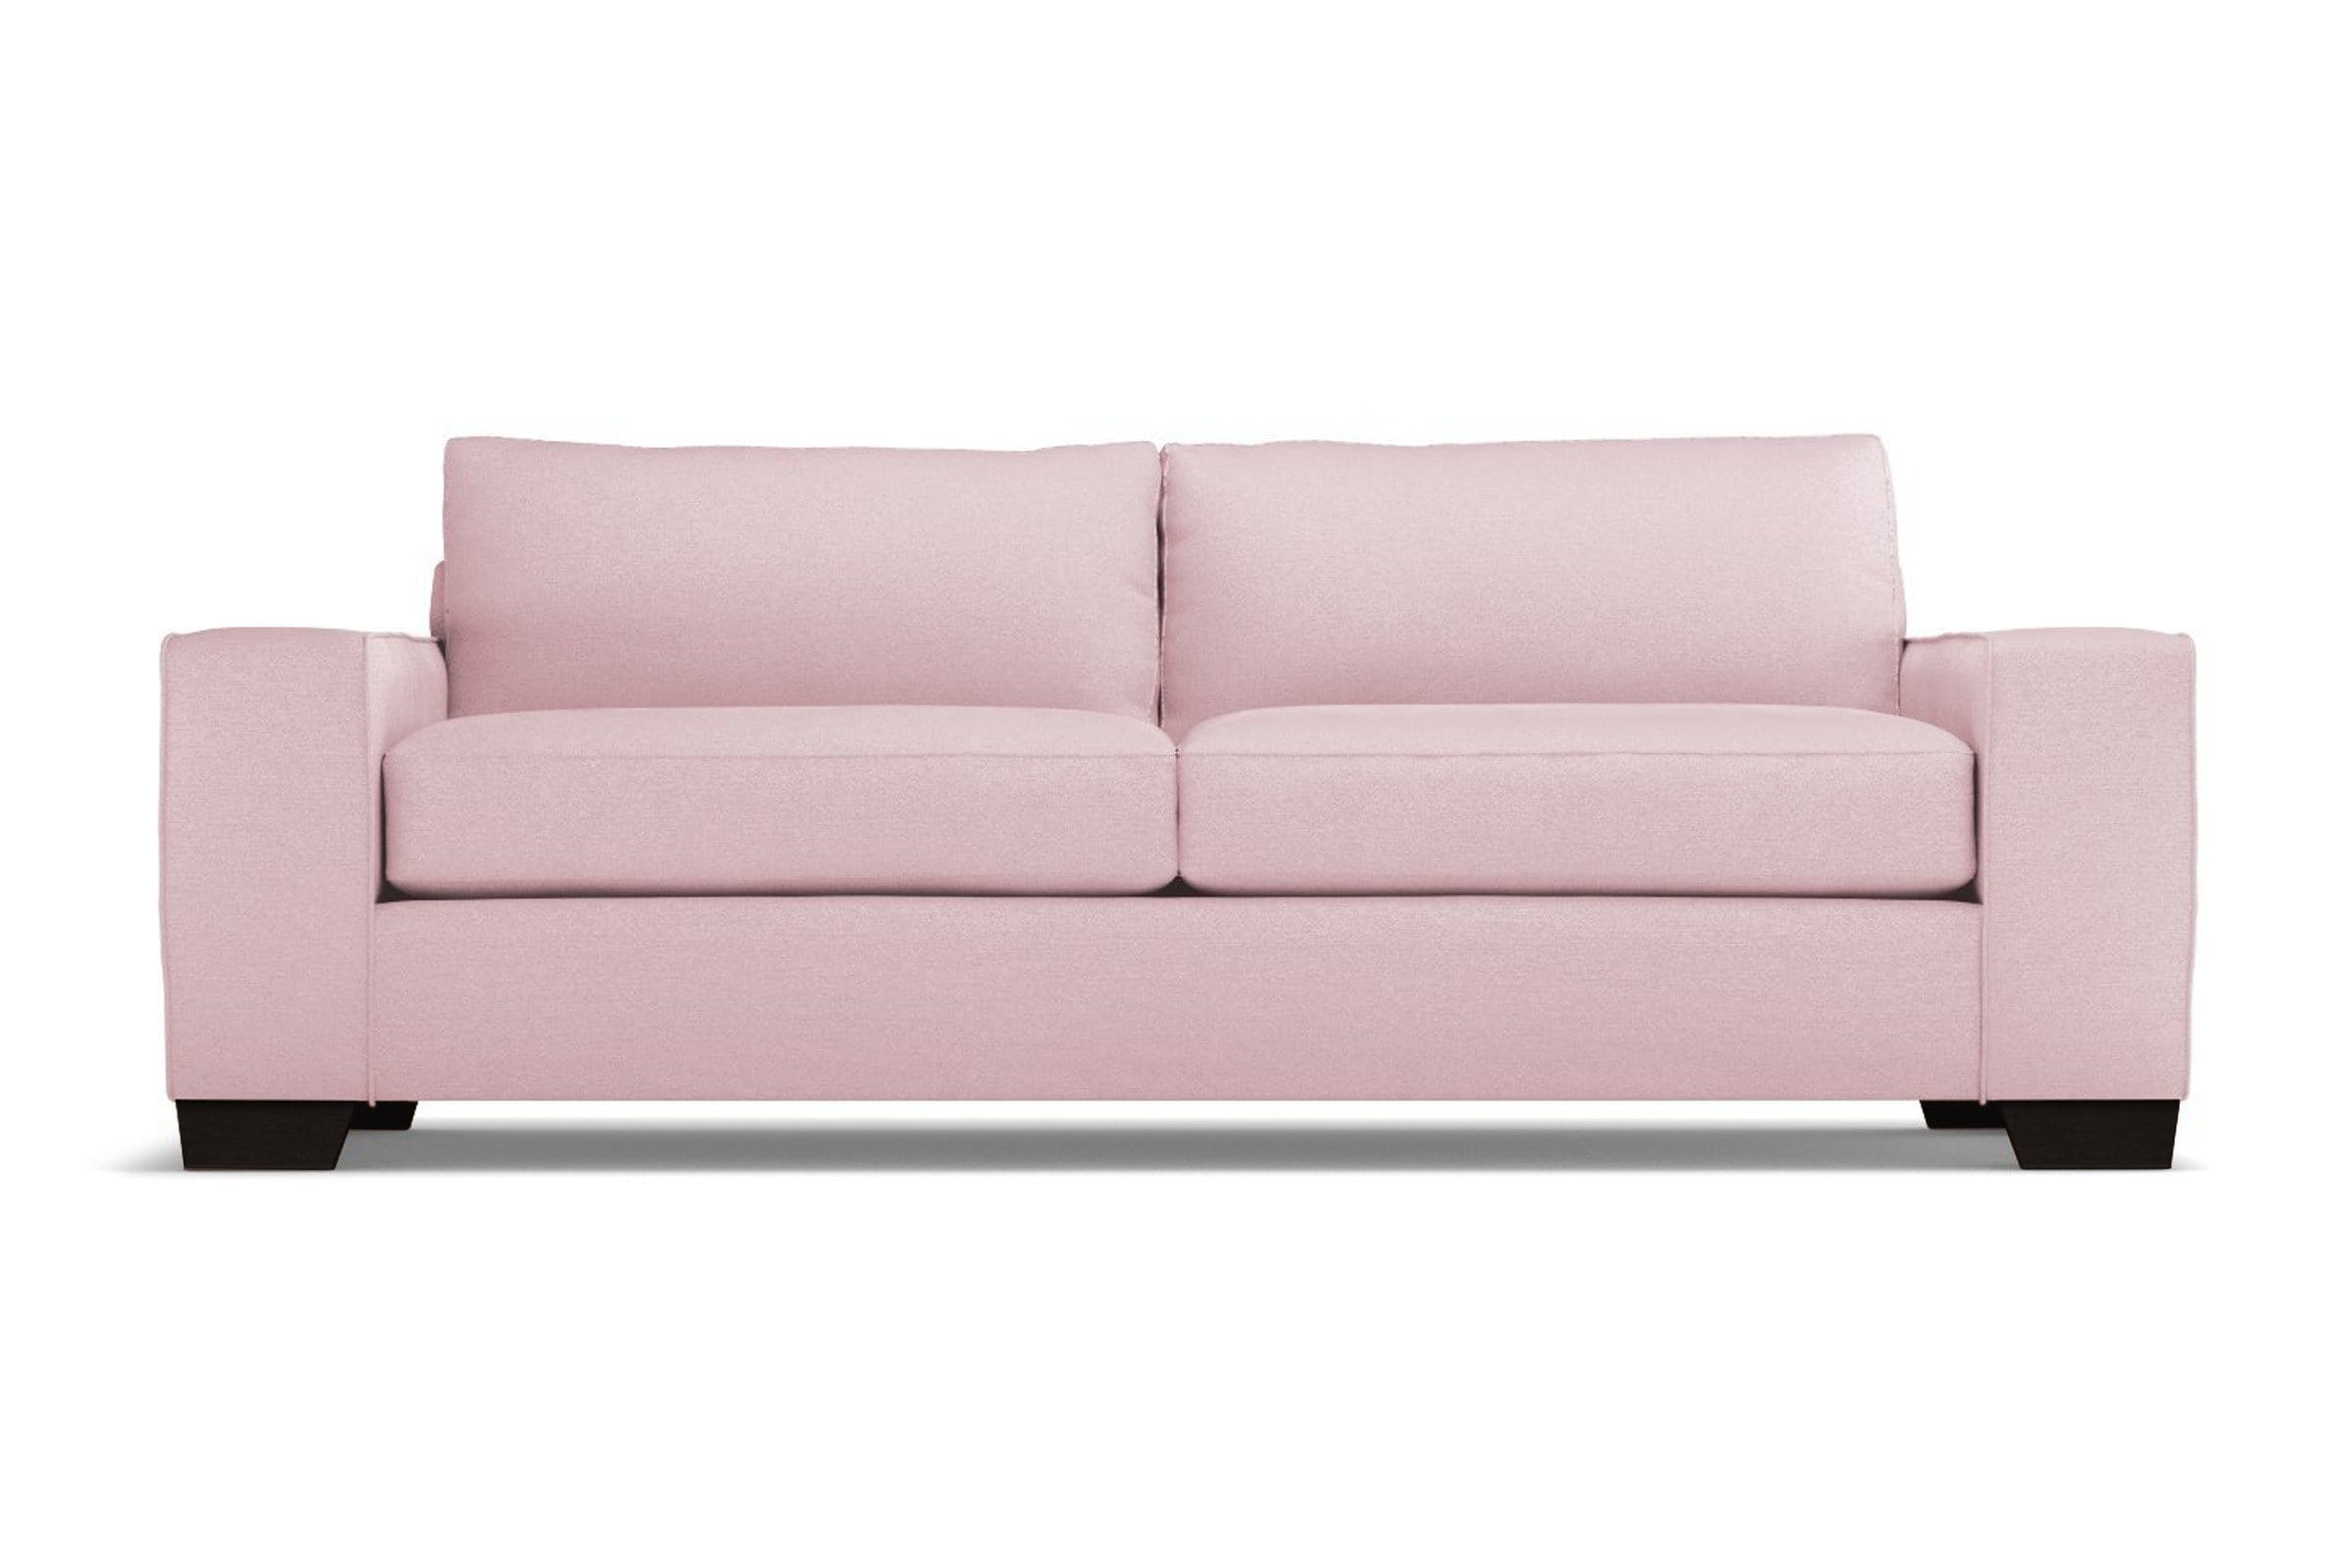 Melrose Sofa - Pink Velvet - Modern Couch Made in the USA - Sold by Apt2B